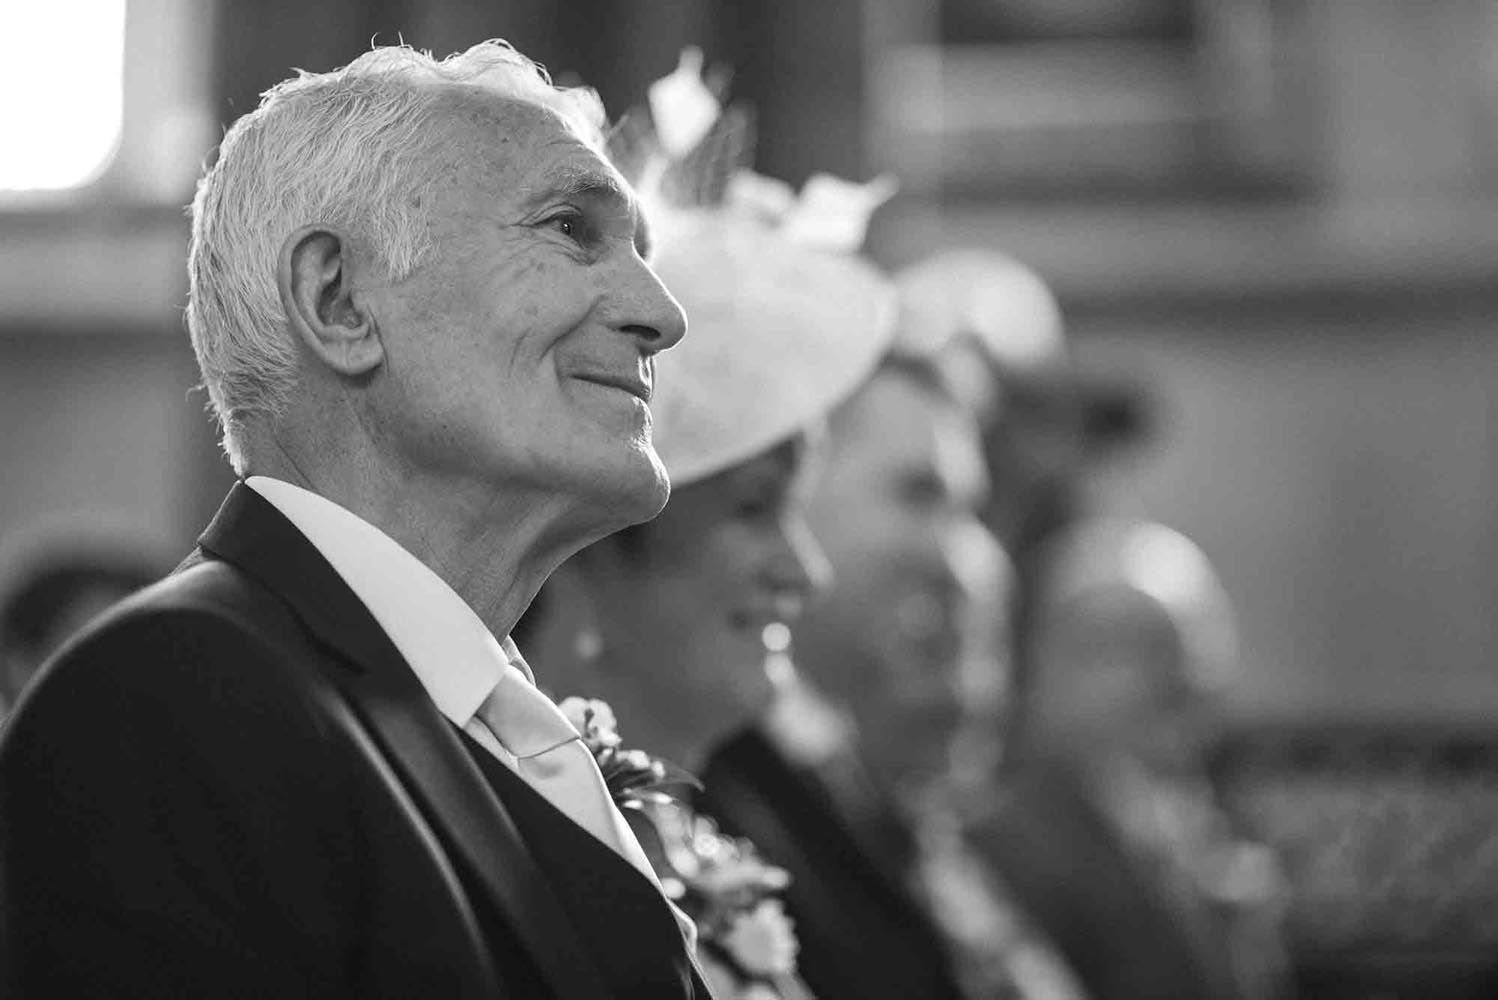 Father of the Bride looks on